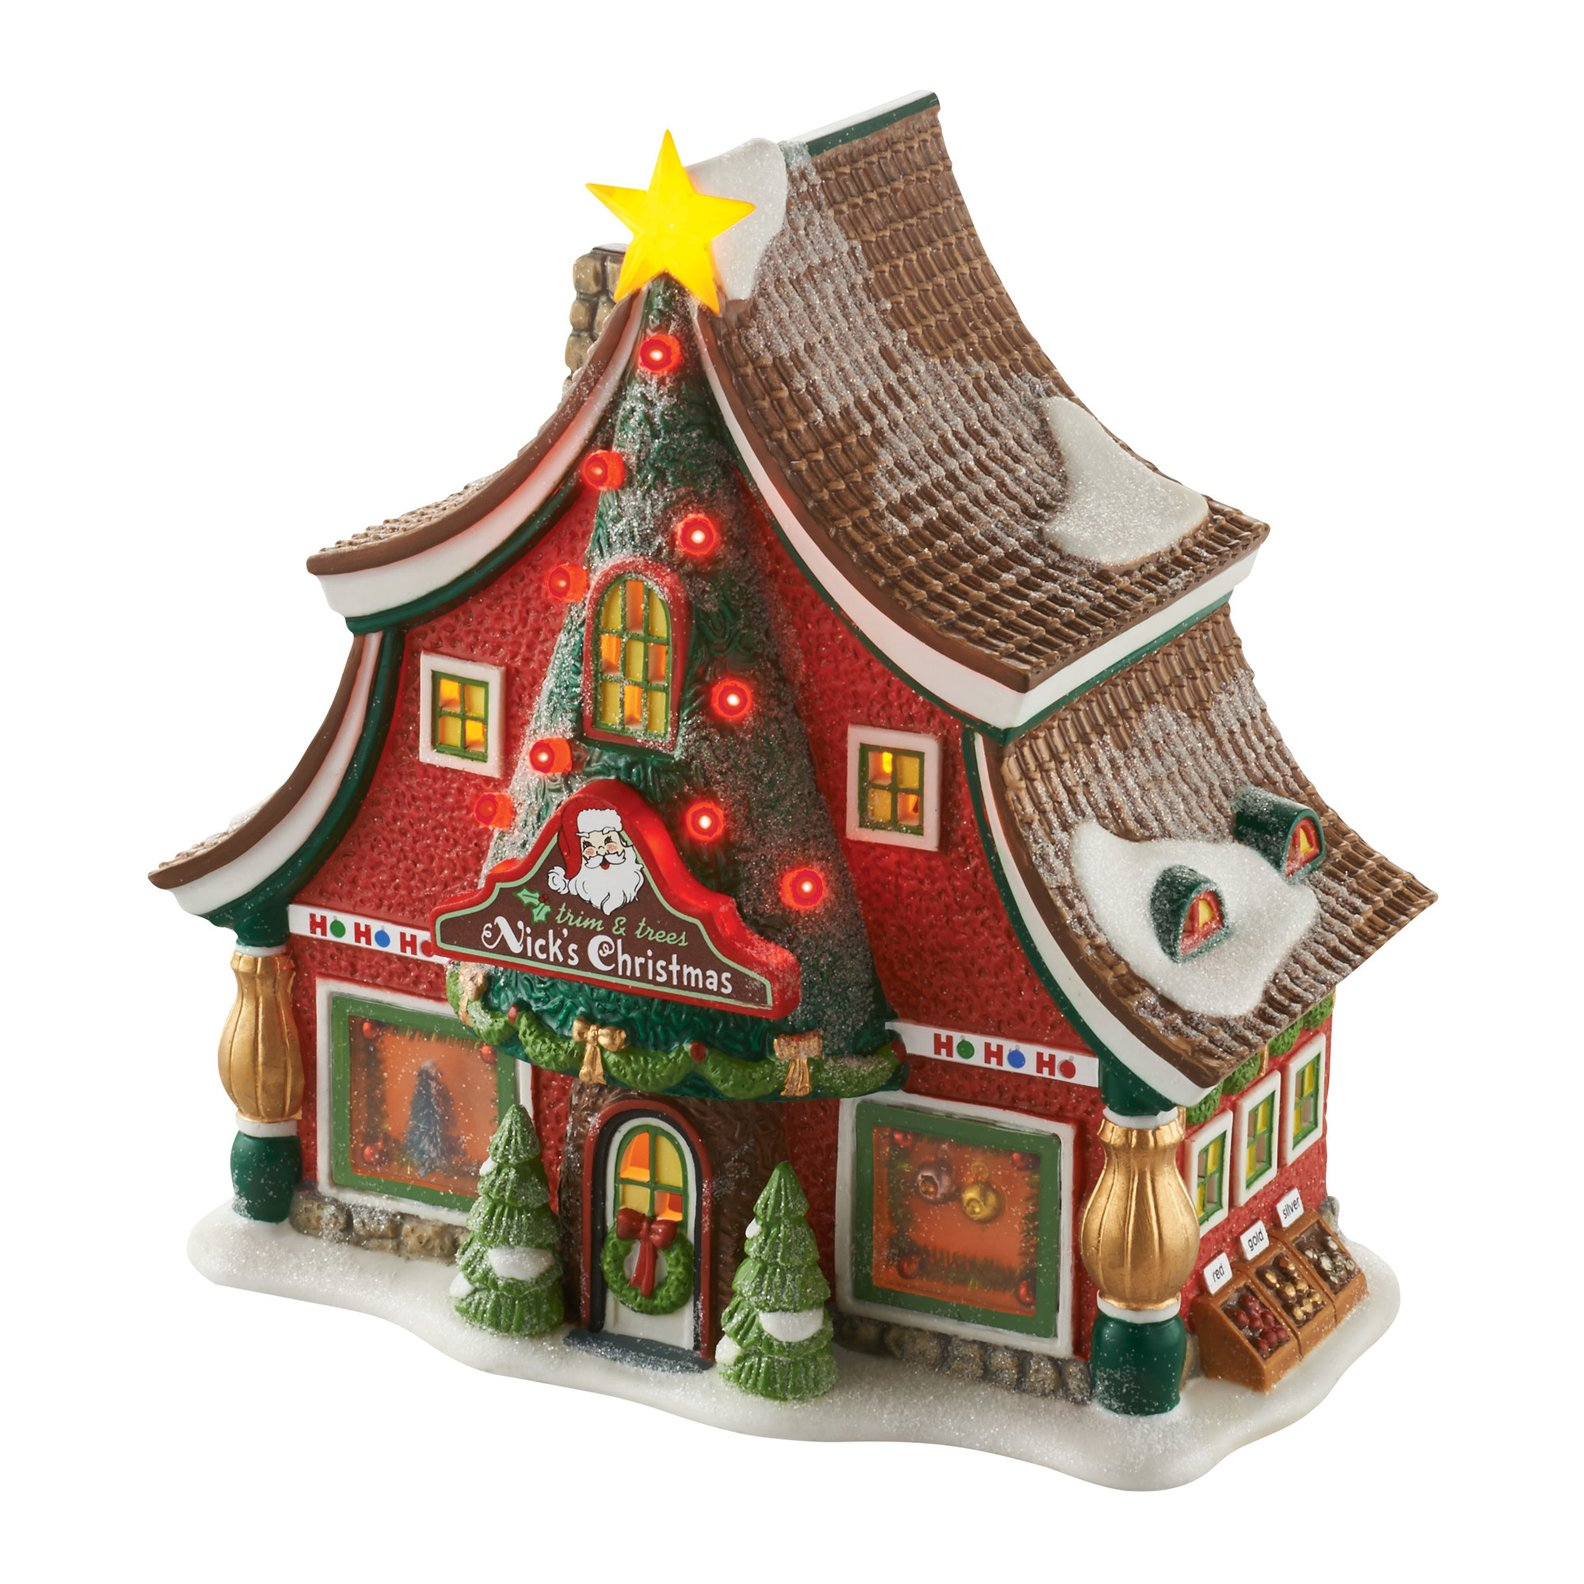 Department 56 North Pole Sounds of Christmas Lighted Building